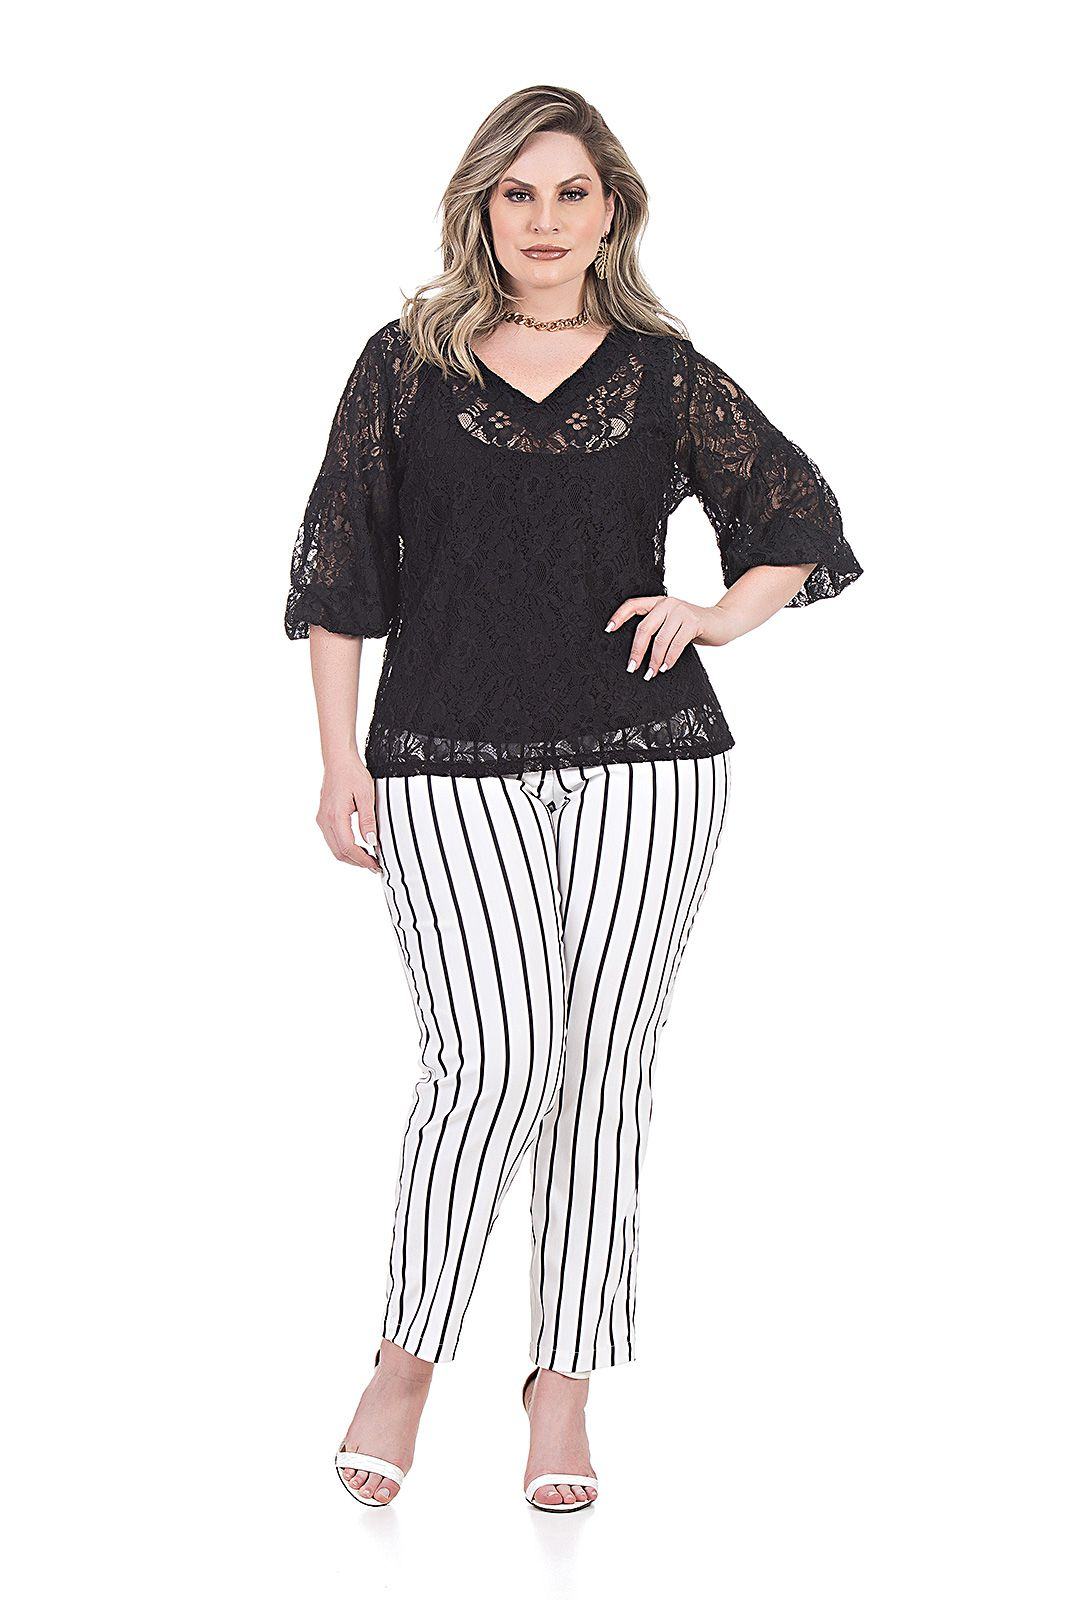 BLUSA DE RENDA - PLUS SIZE